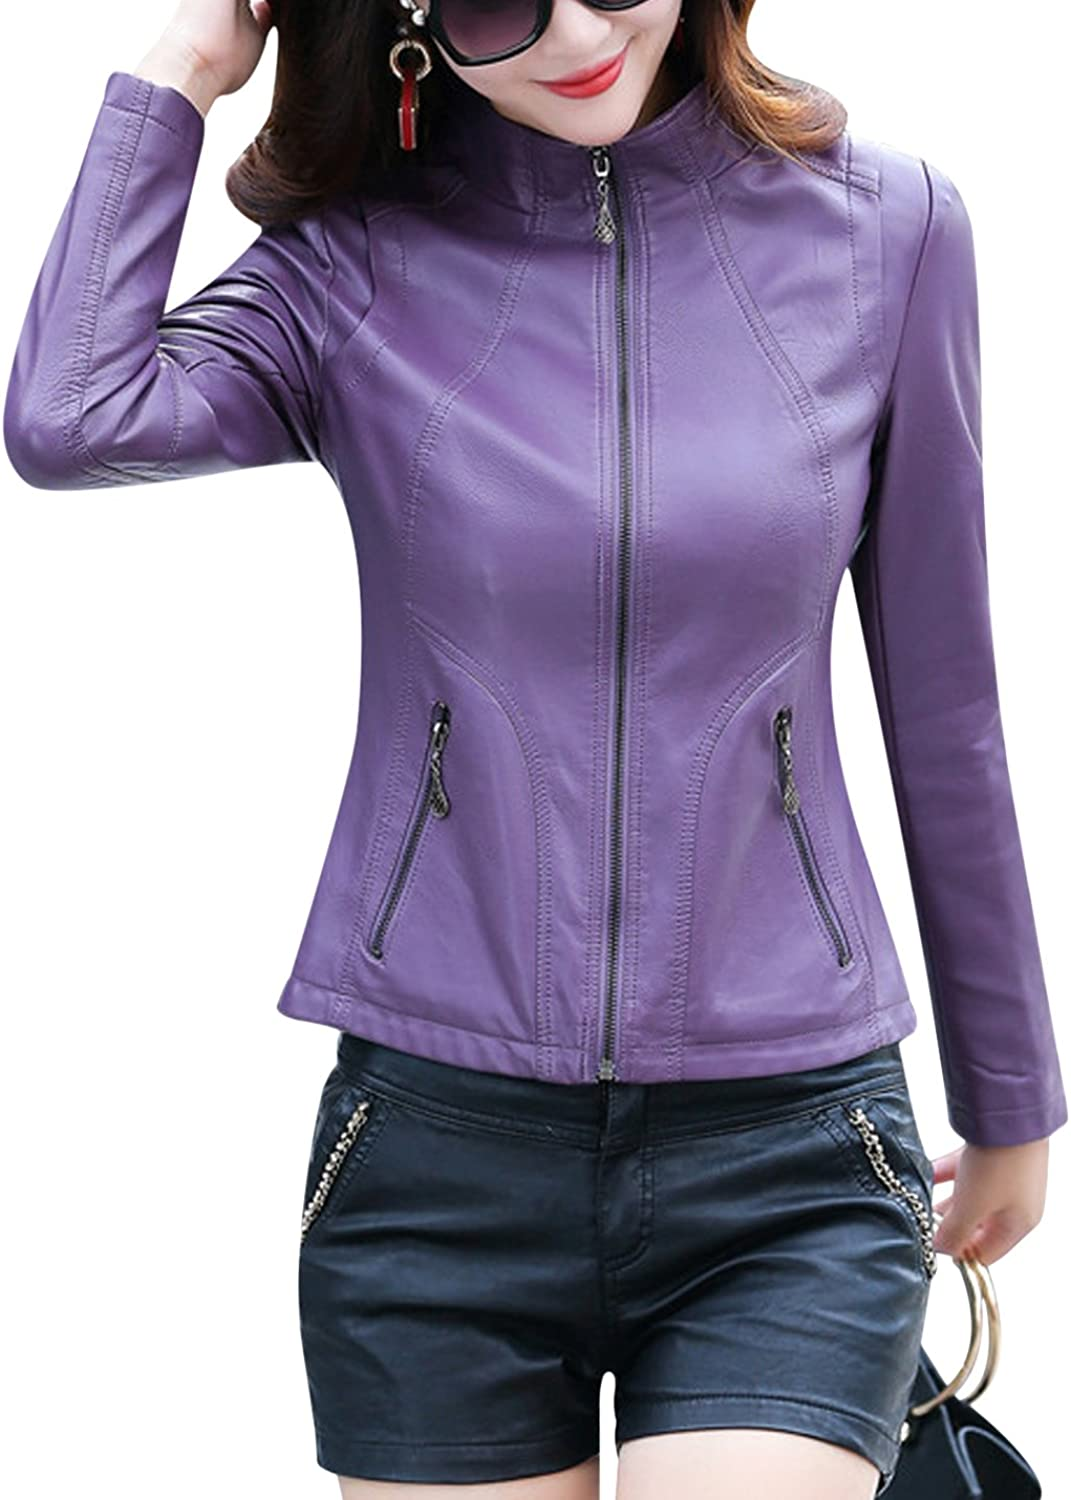 Tanming Women's Stand Collar Full Zip Up Faux Leather Jacket Outerwear